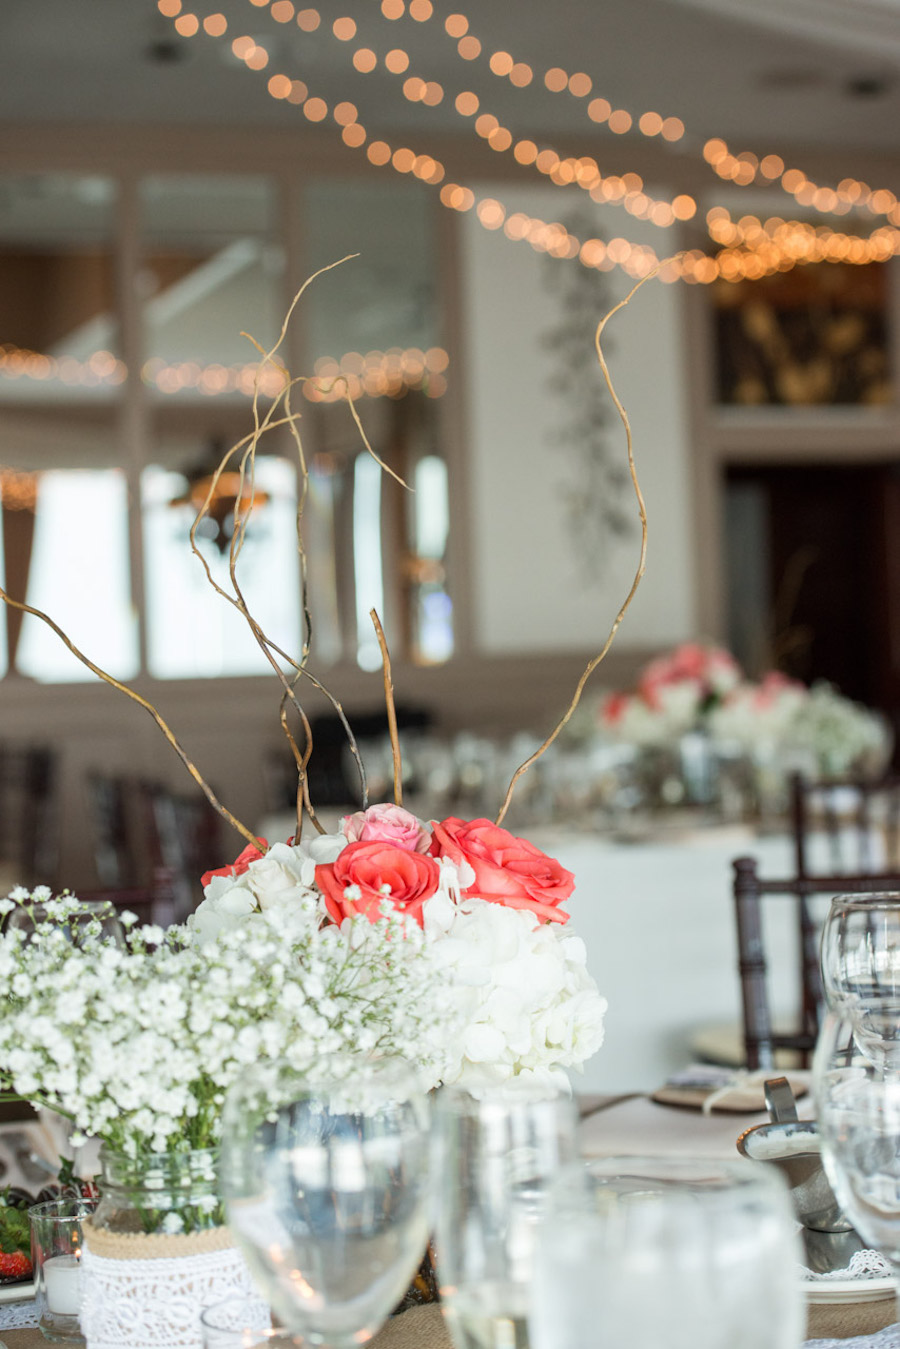 Wedding Reception Decor with White and Coral Rose